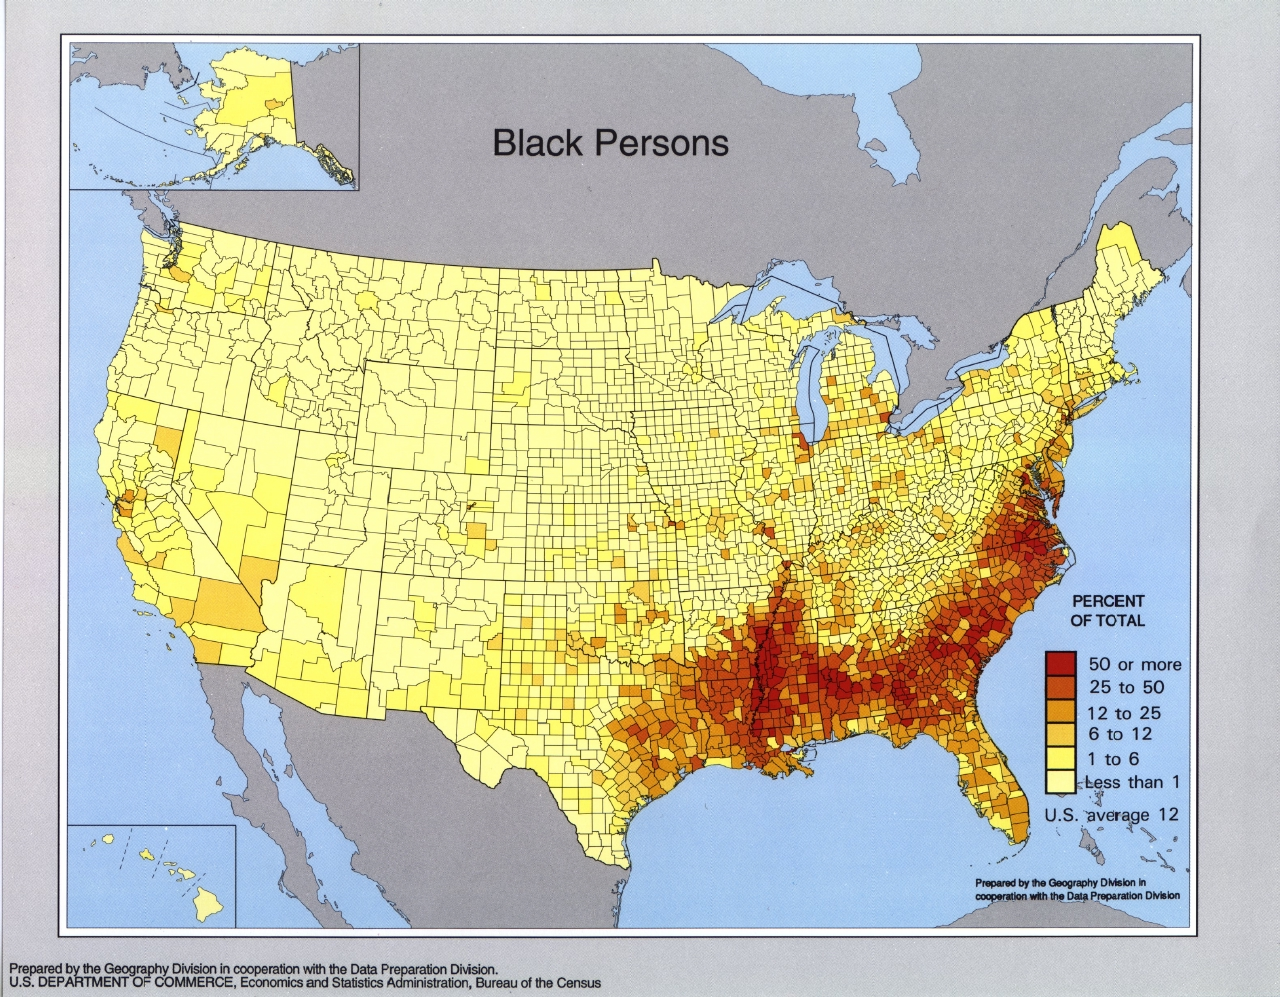 FileUS Census Blackjpg Wikimedia Commons - United states population map